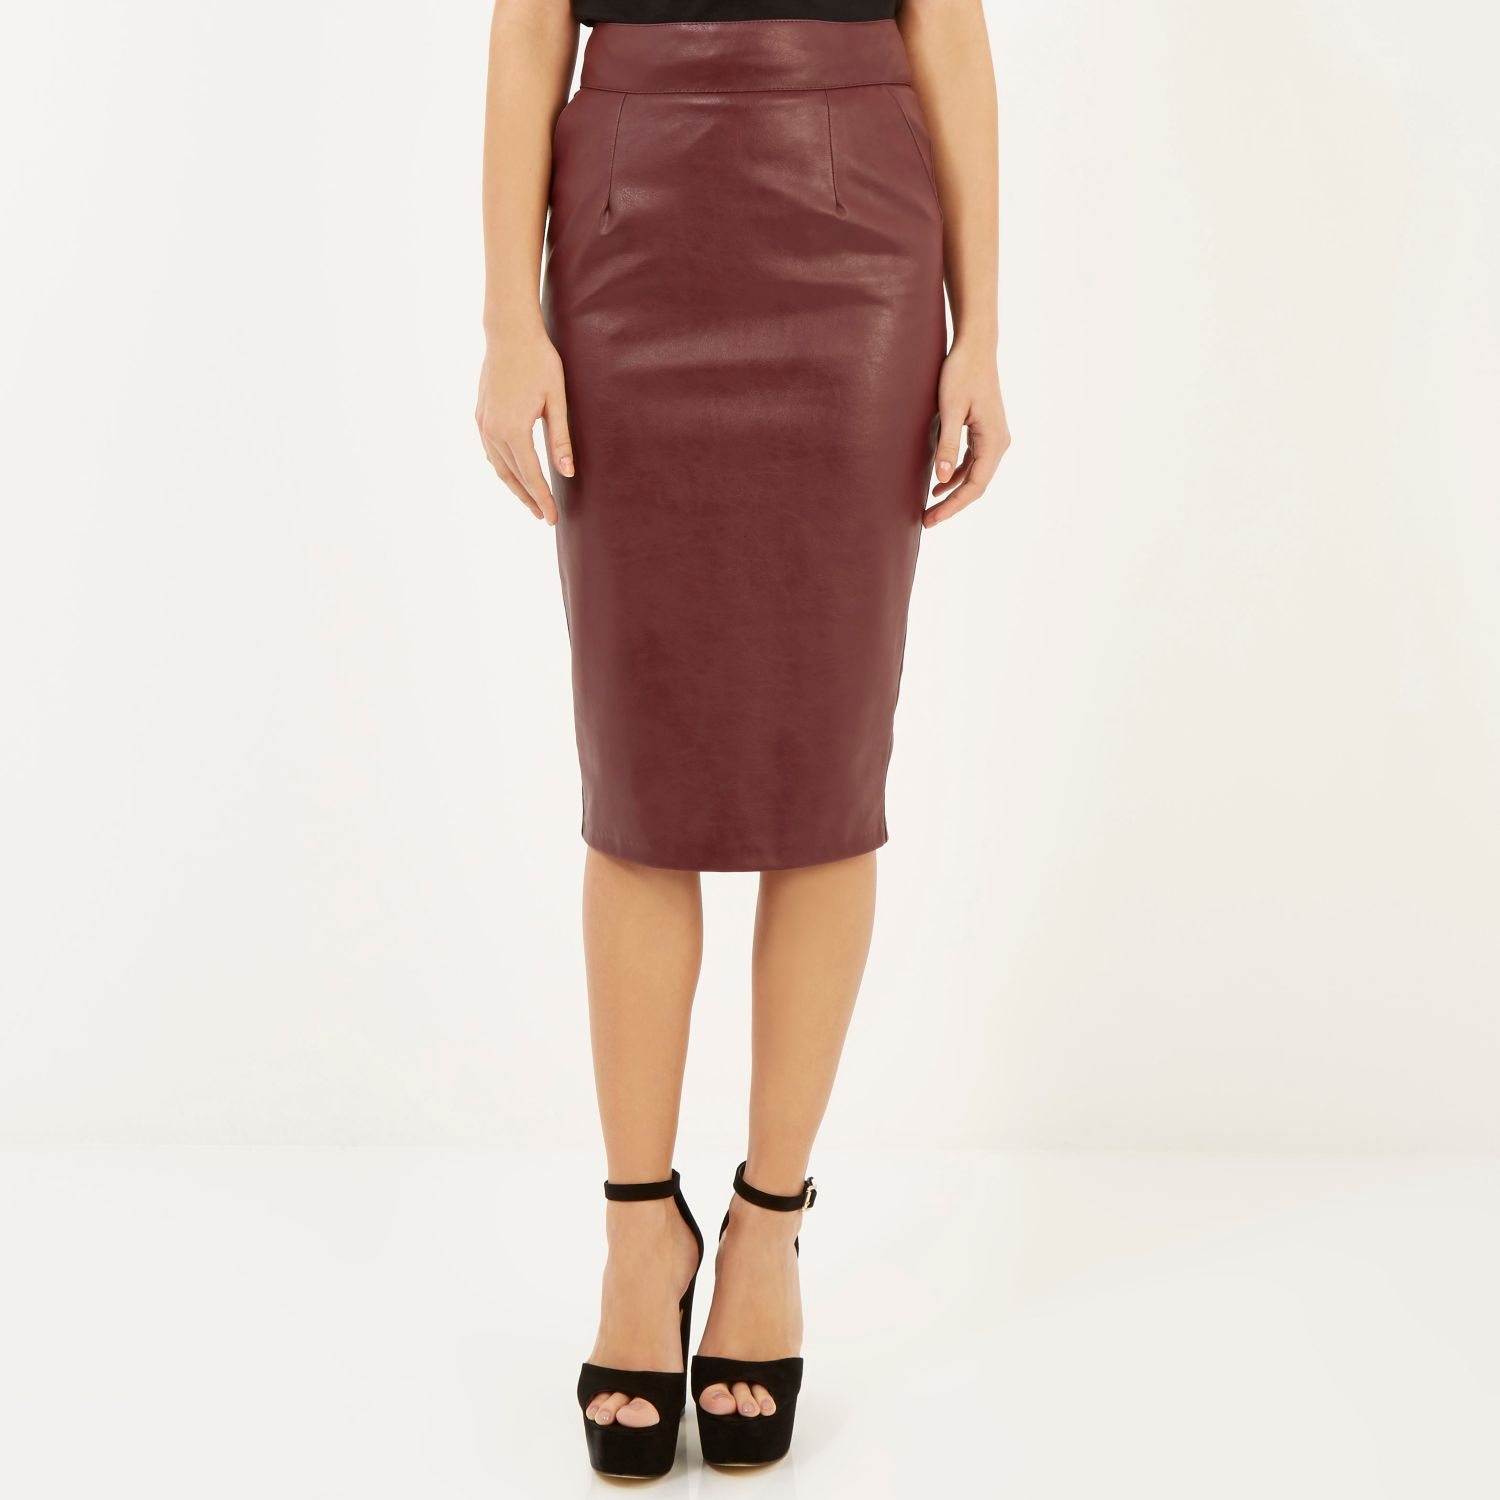 River island dark red leather pencil skirt – Modern skirts blog ...